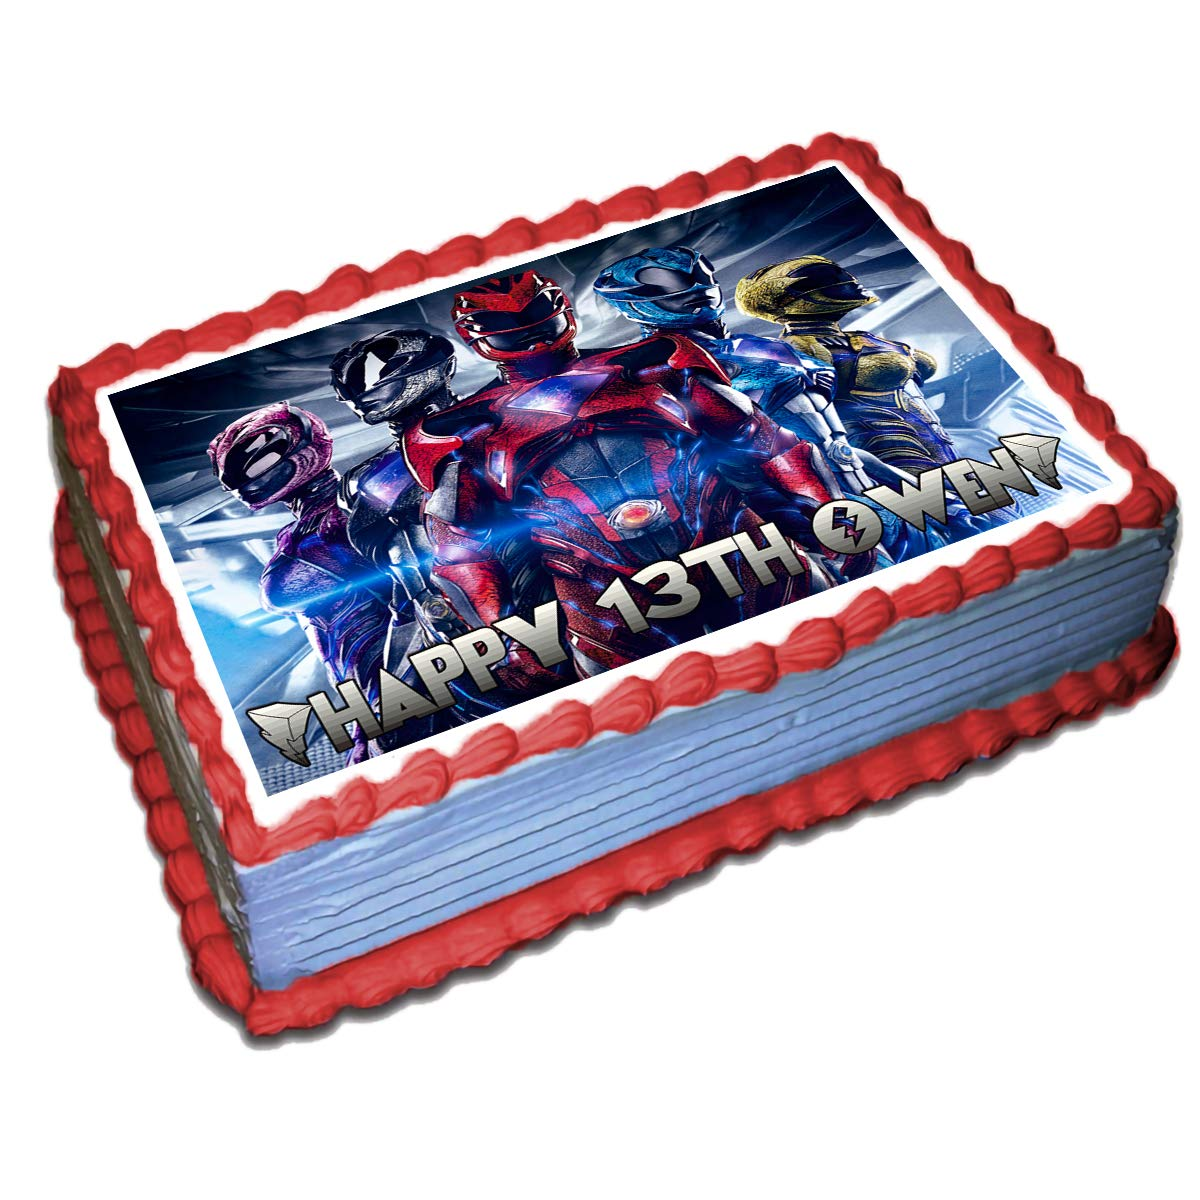 Astonishing Power Rangers Personalized Cake Toppers Icing Sugar Paper 1 4 8 5 Funny Birthday Cards Online Inifodamsfinfo